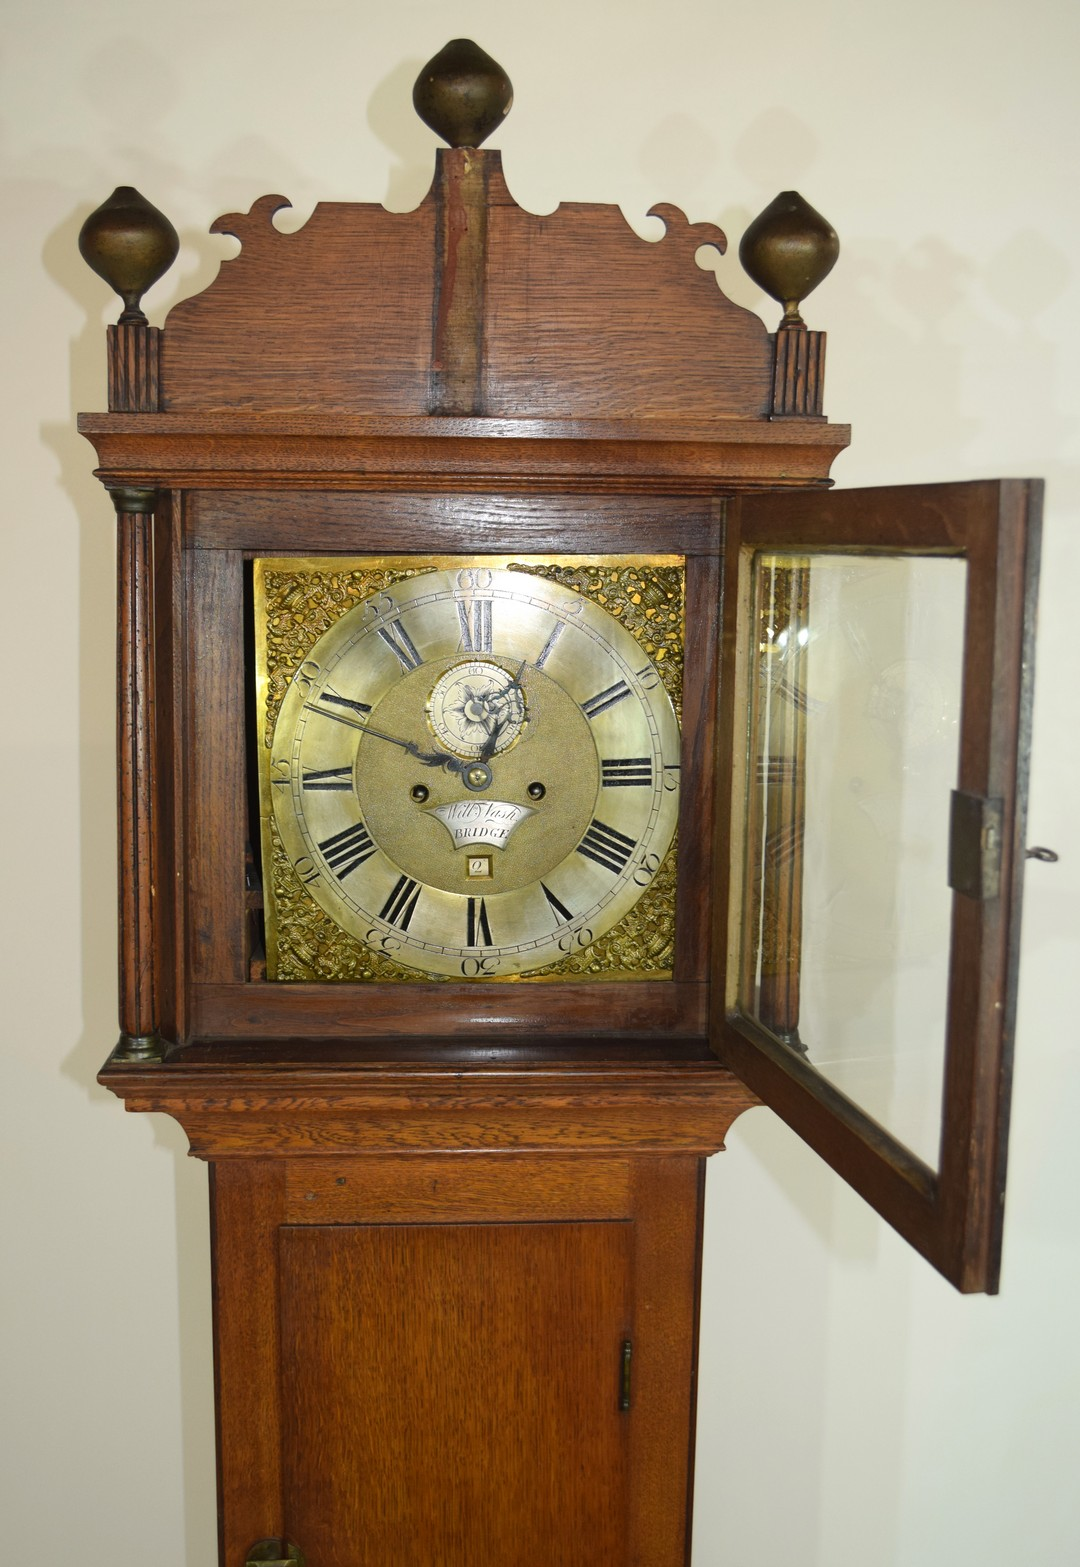 William Nash, Bridge, (Kent) 18th century oak cased longcase clock, the brass and silvered face with - Image 3 of 4